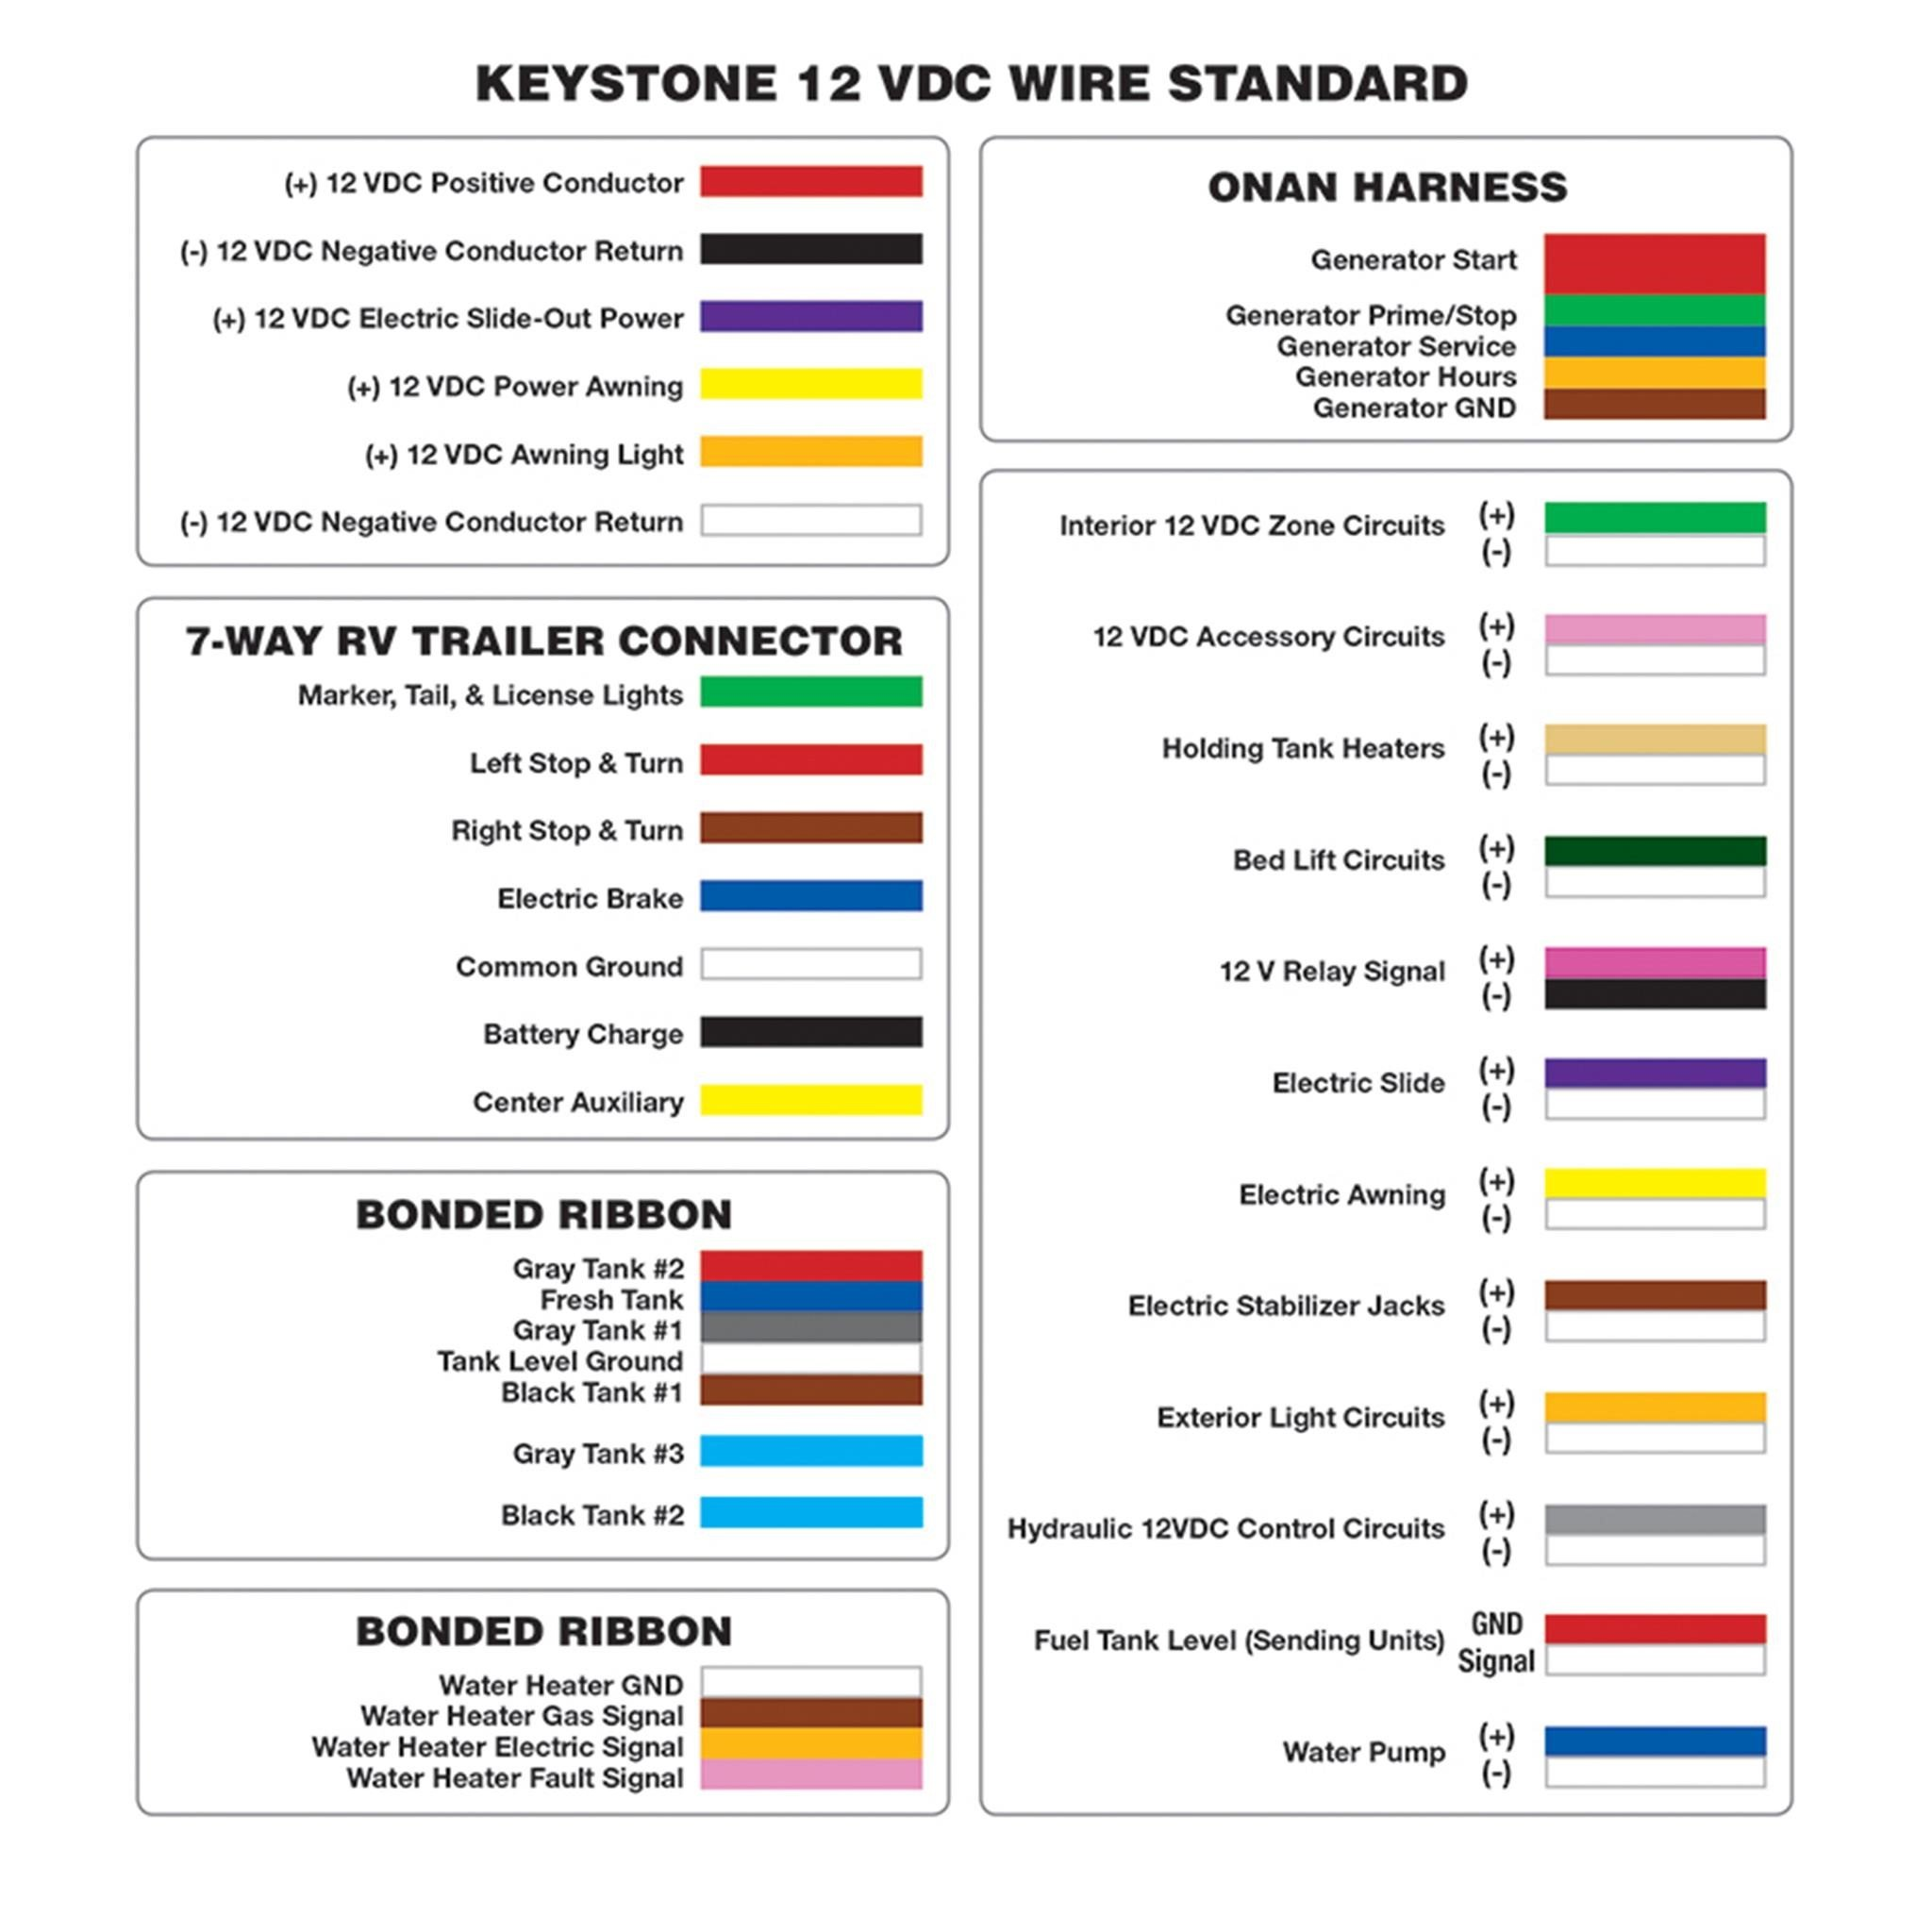 keystone rv company's unified wiring standard makes it easy to find  specific wires and circuits  (image courtesy of keystone rv company )